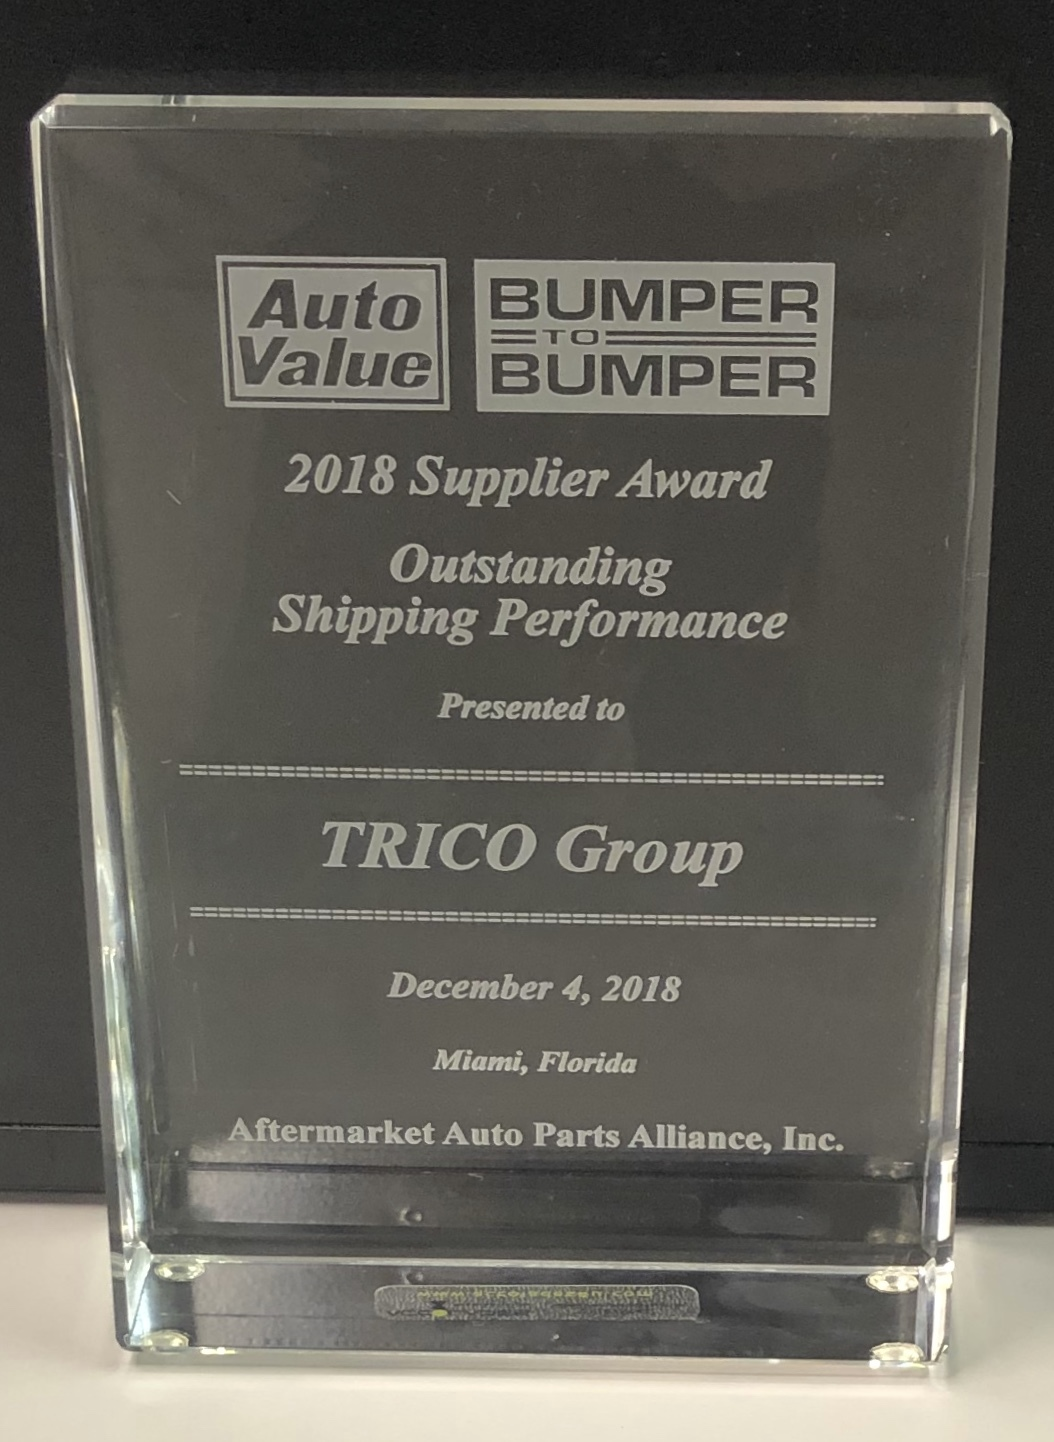 Trico Receives Performance Award from Aftermarket Auto Parts Alliance